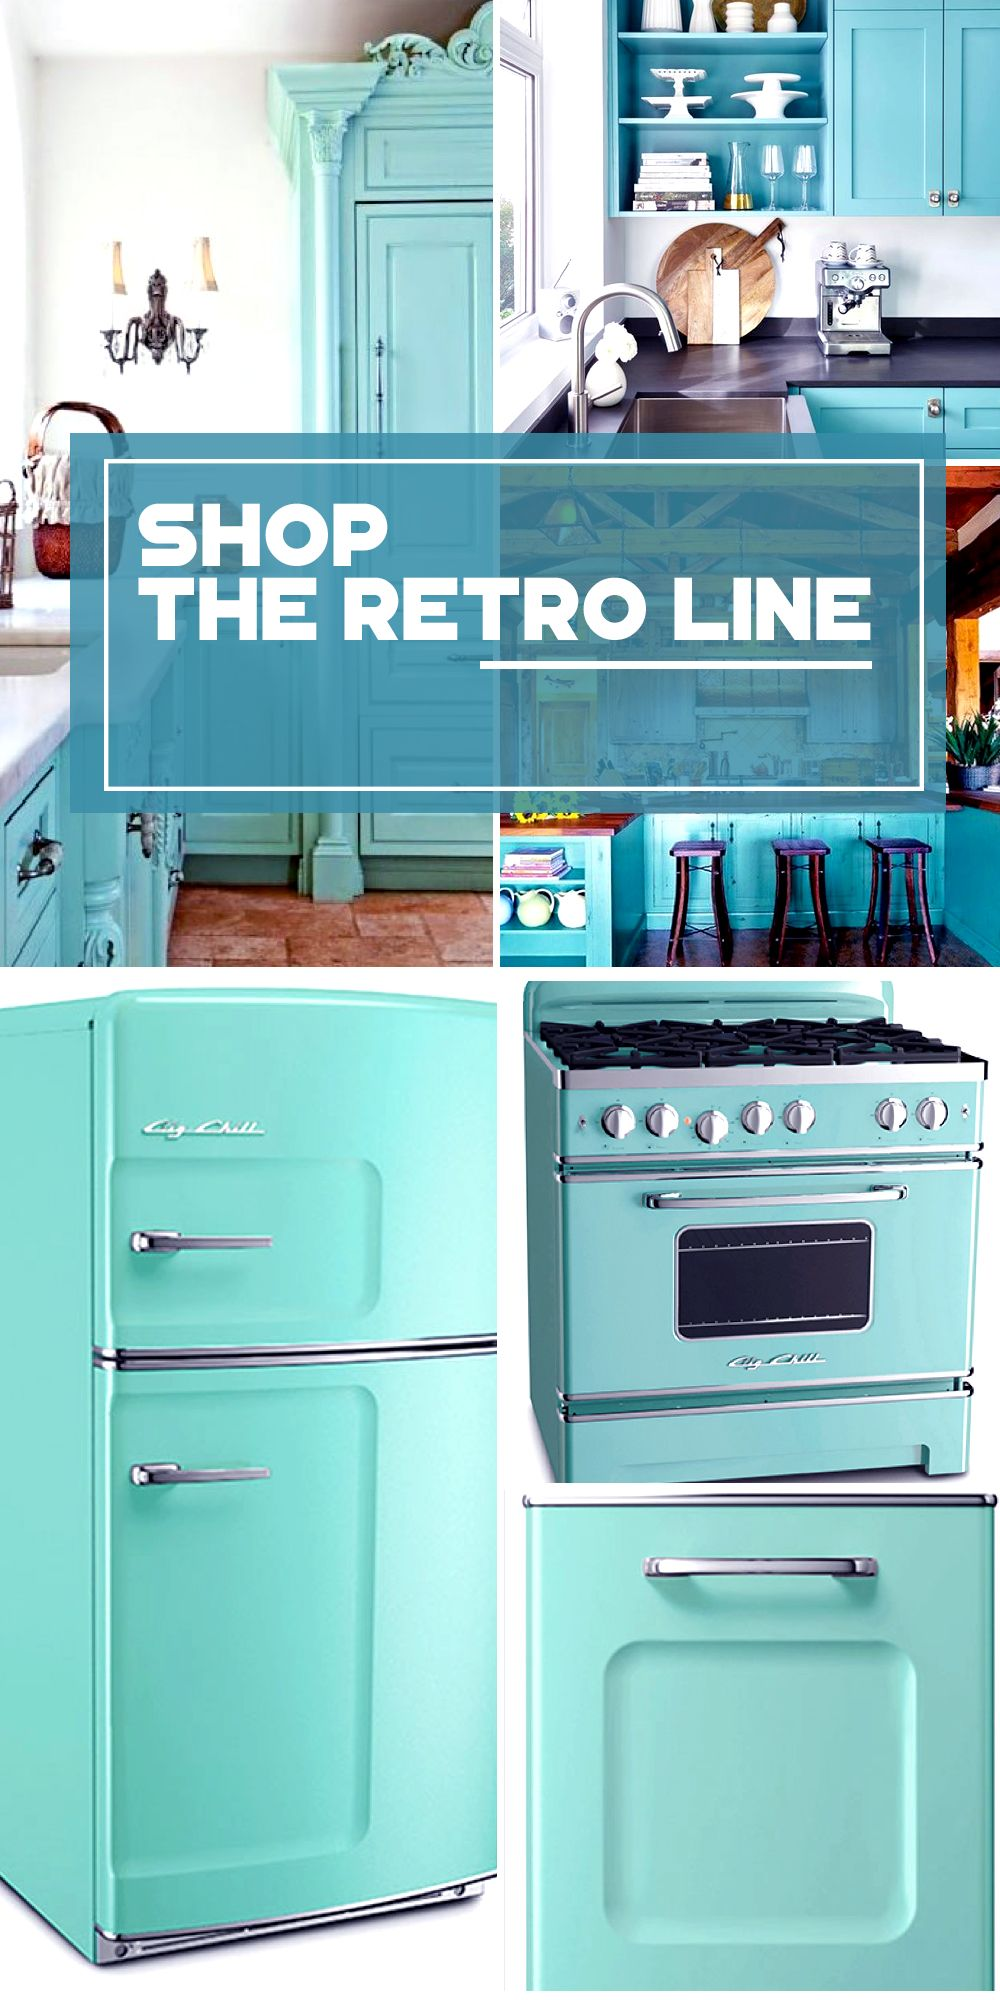 The Retro Kitchen Appliance Product Line Click Colors And Retro Appliances